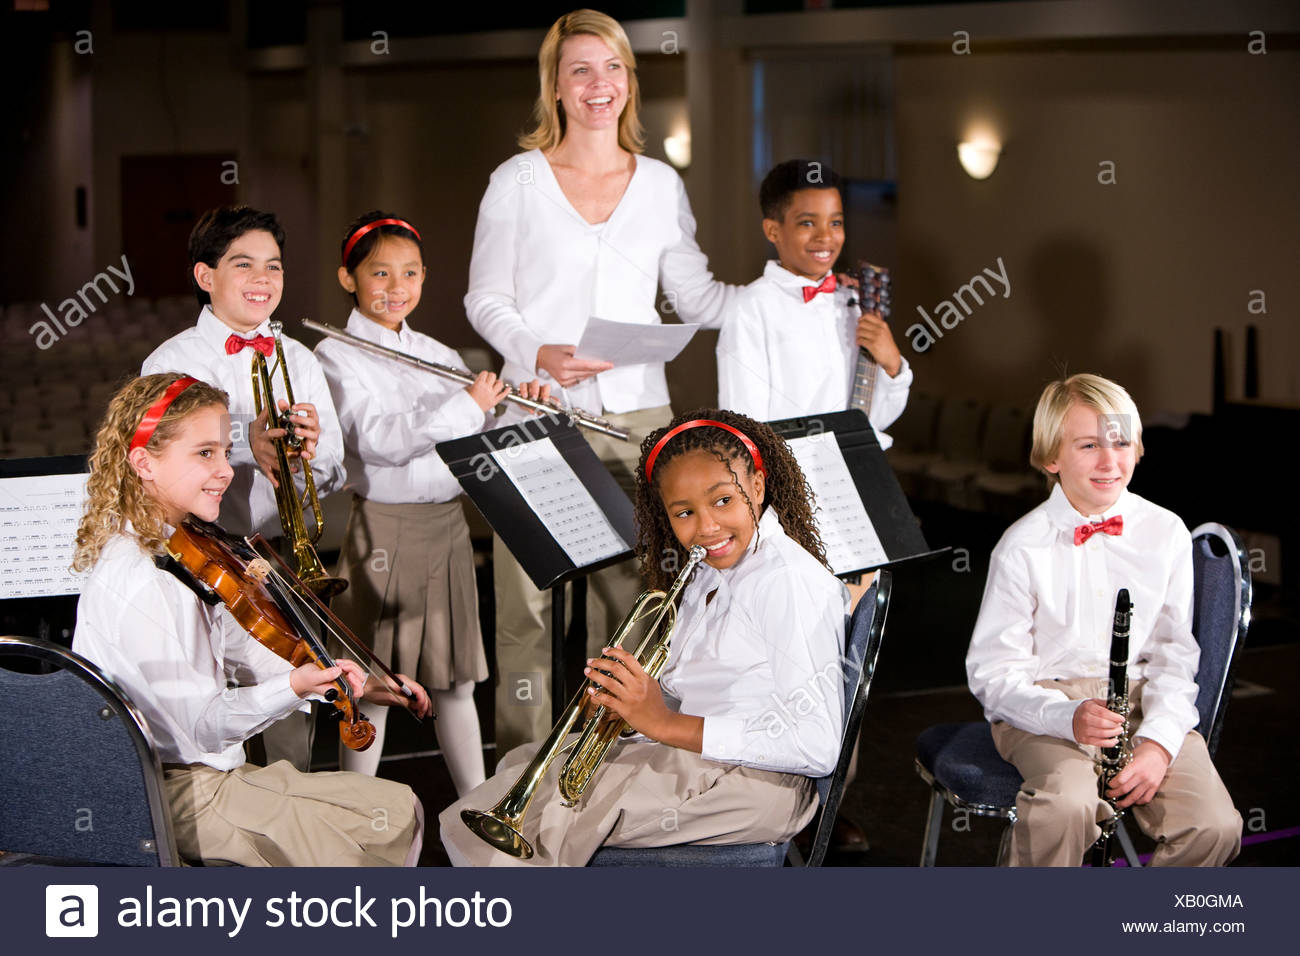 School children playing musical instruments in band with teacher - Stock Image